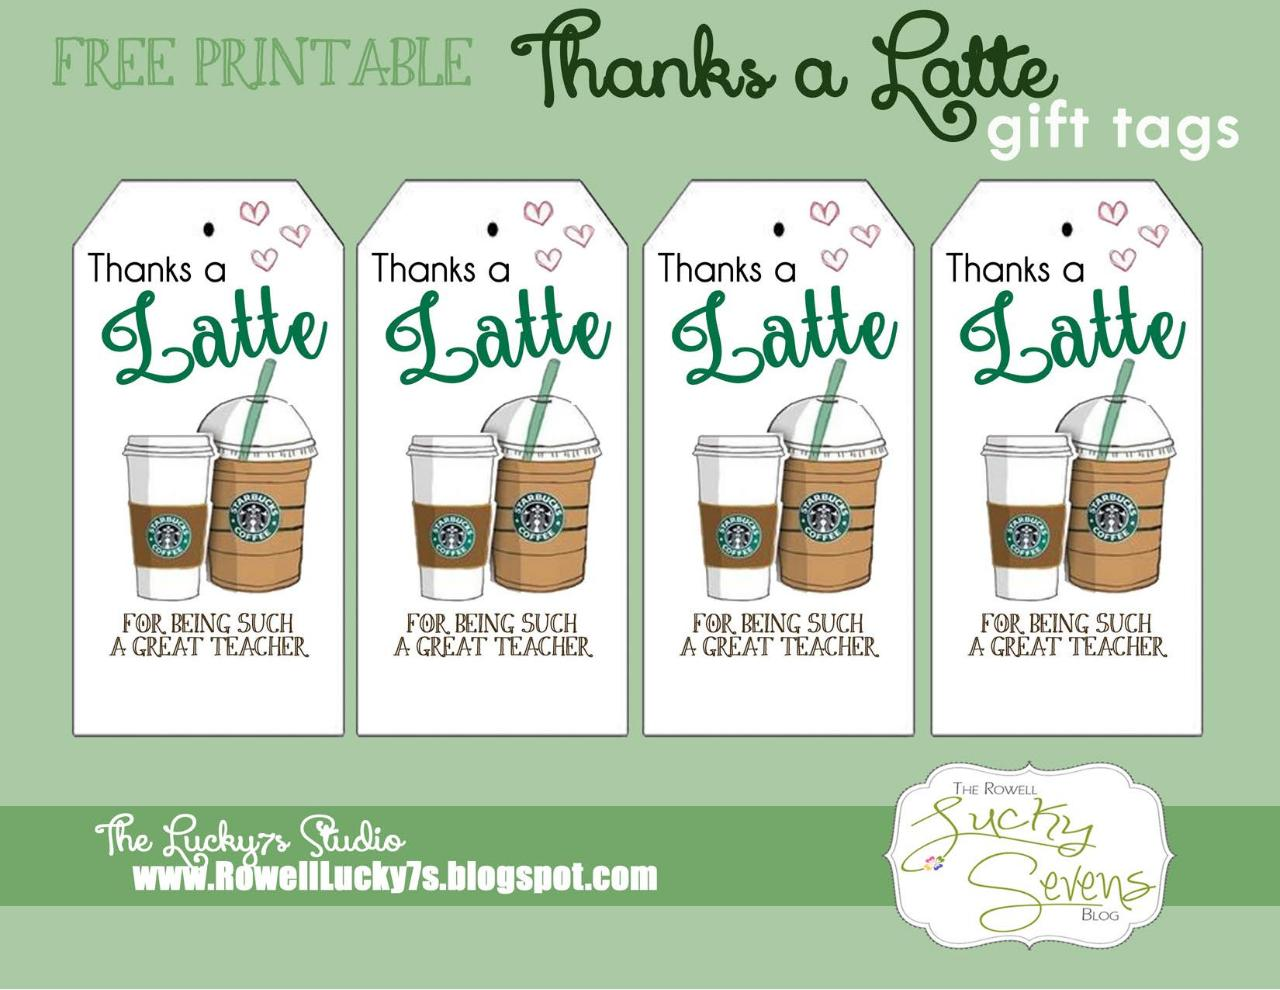 graphic about Thanks a Latte Printable named latte because of free of charge printable - PDF Archive